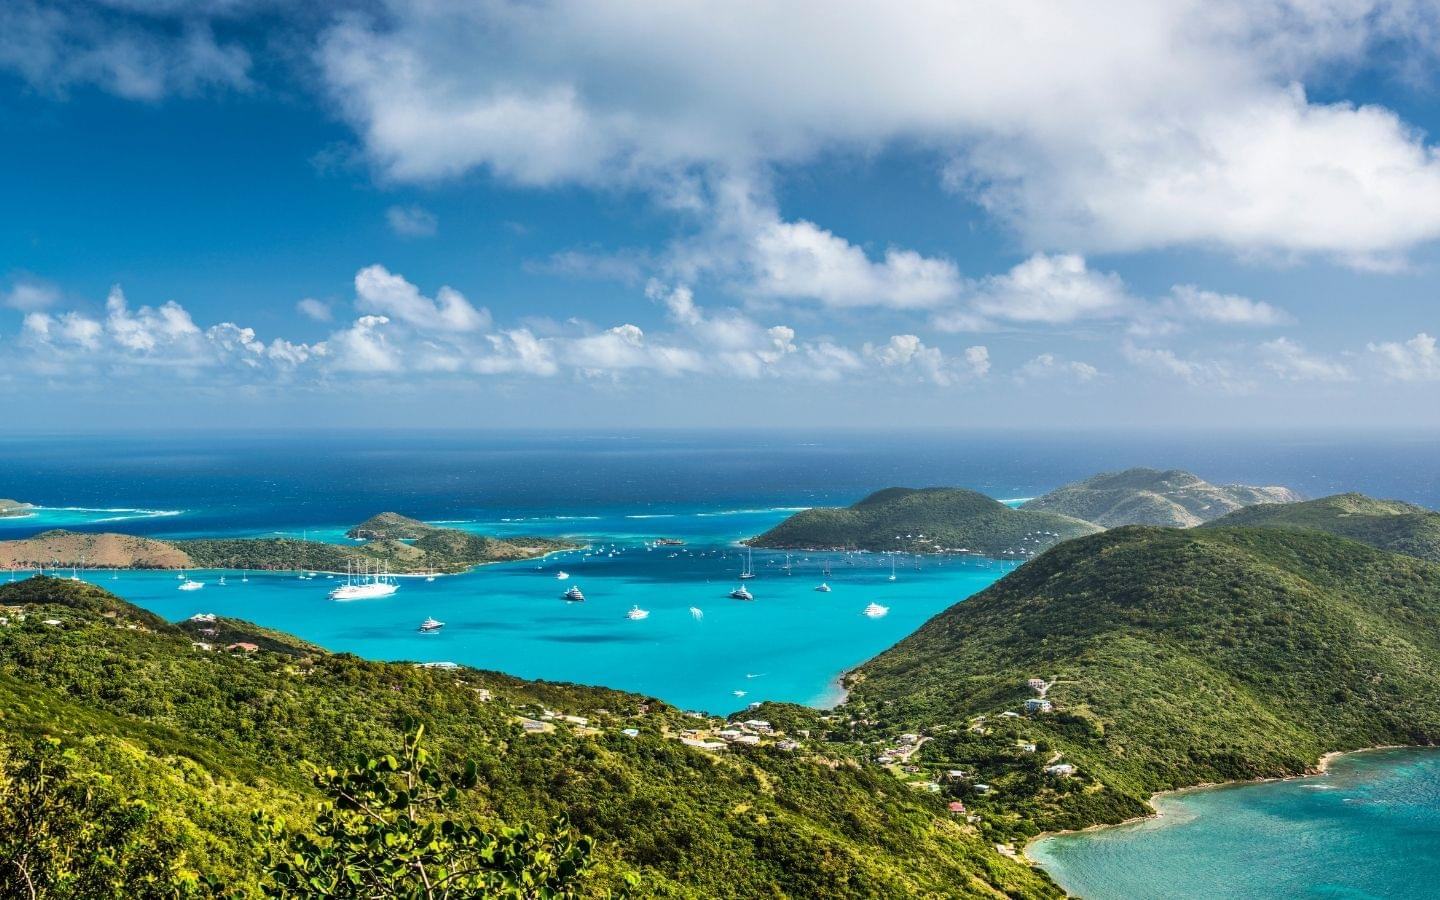 Where to find the best snorkeling in Virgin Islands